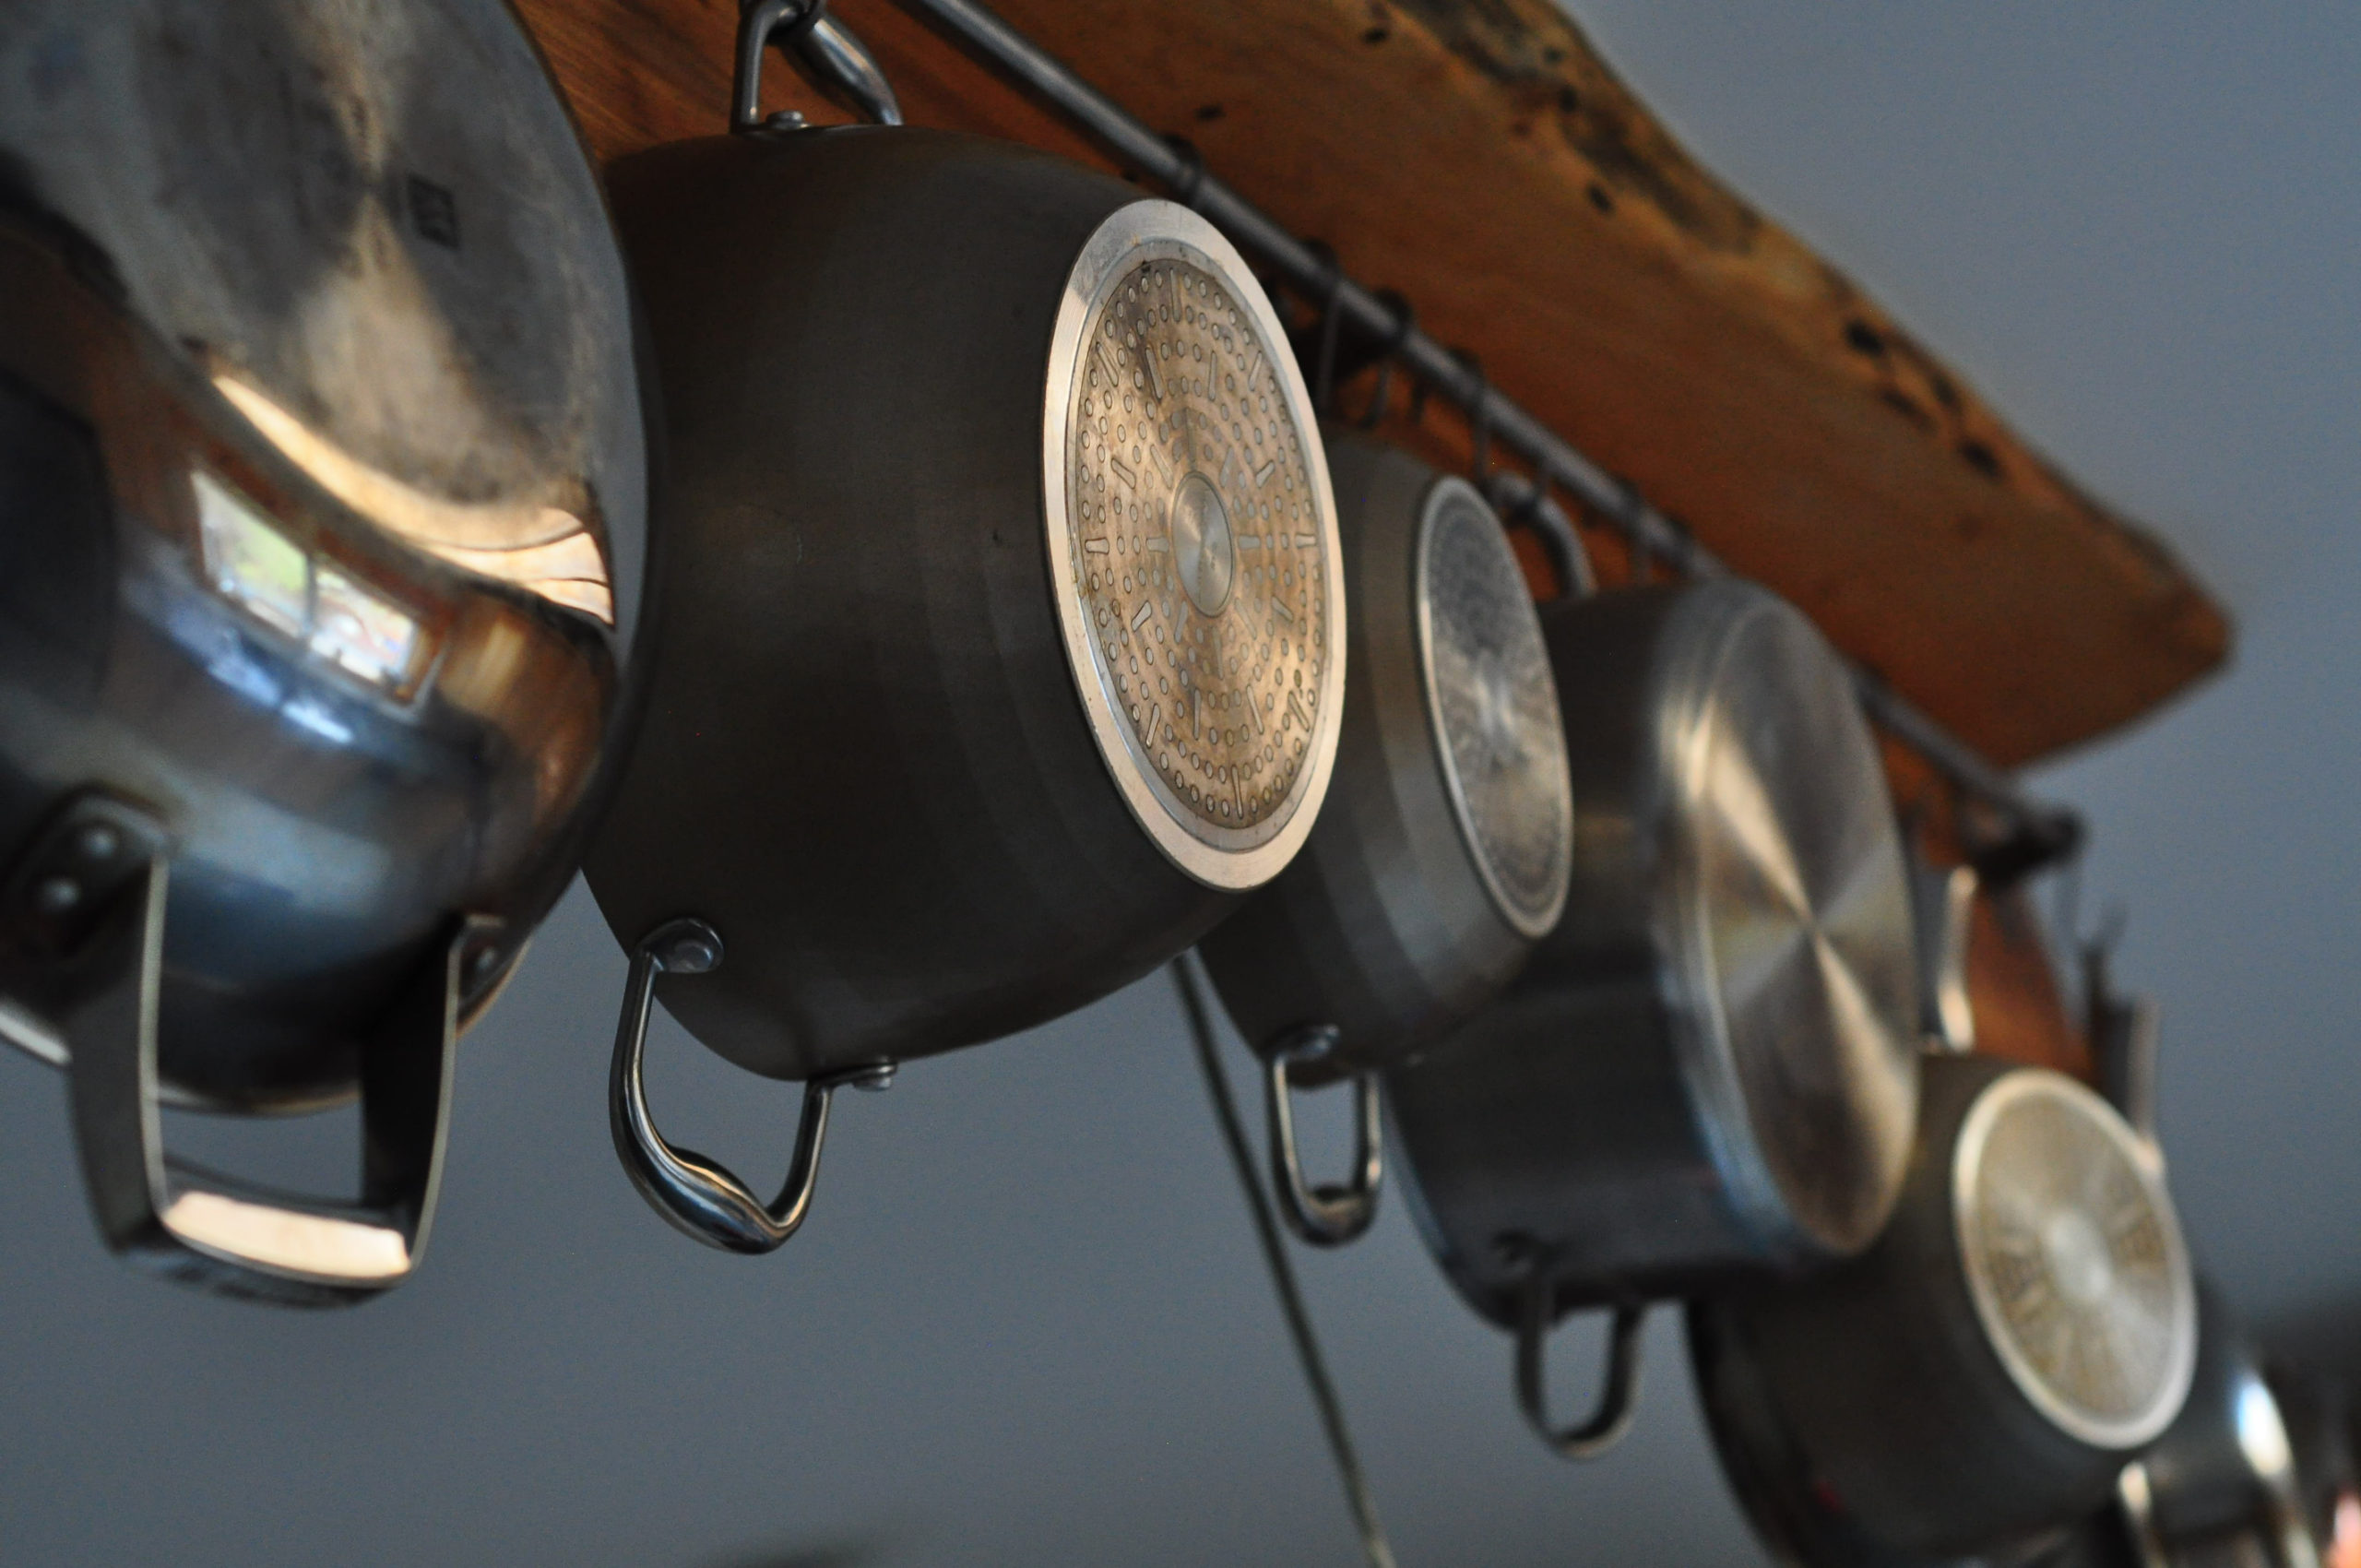 Healthiest materials for pots and pans